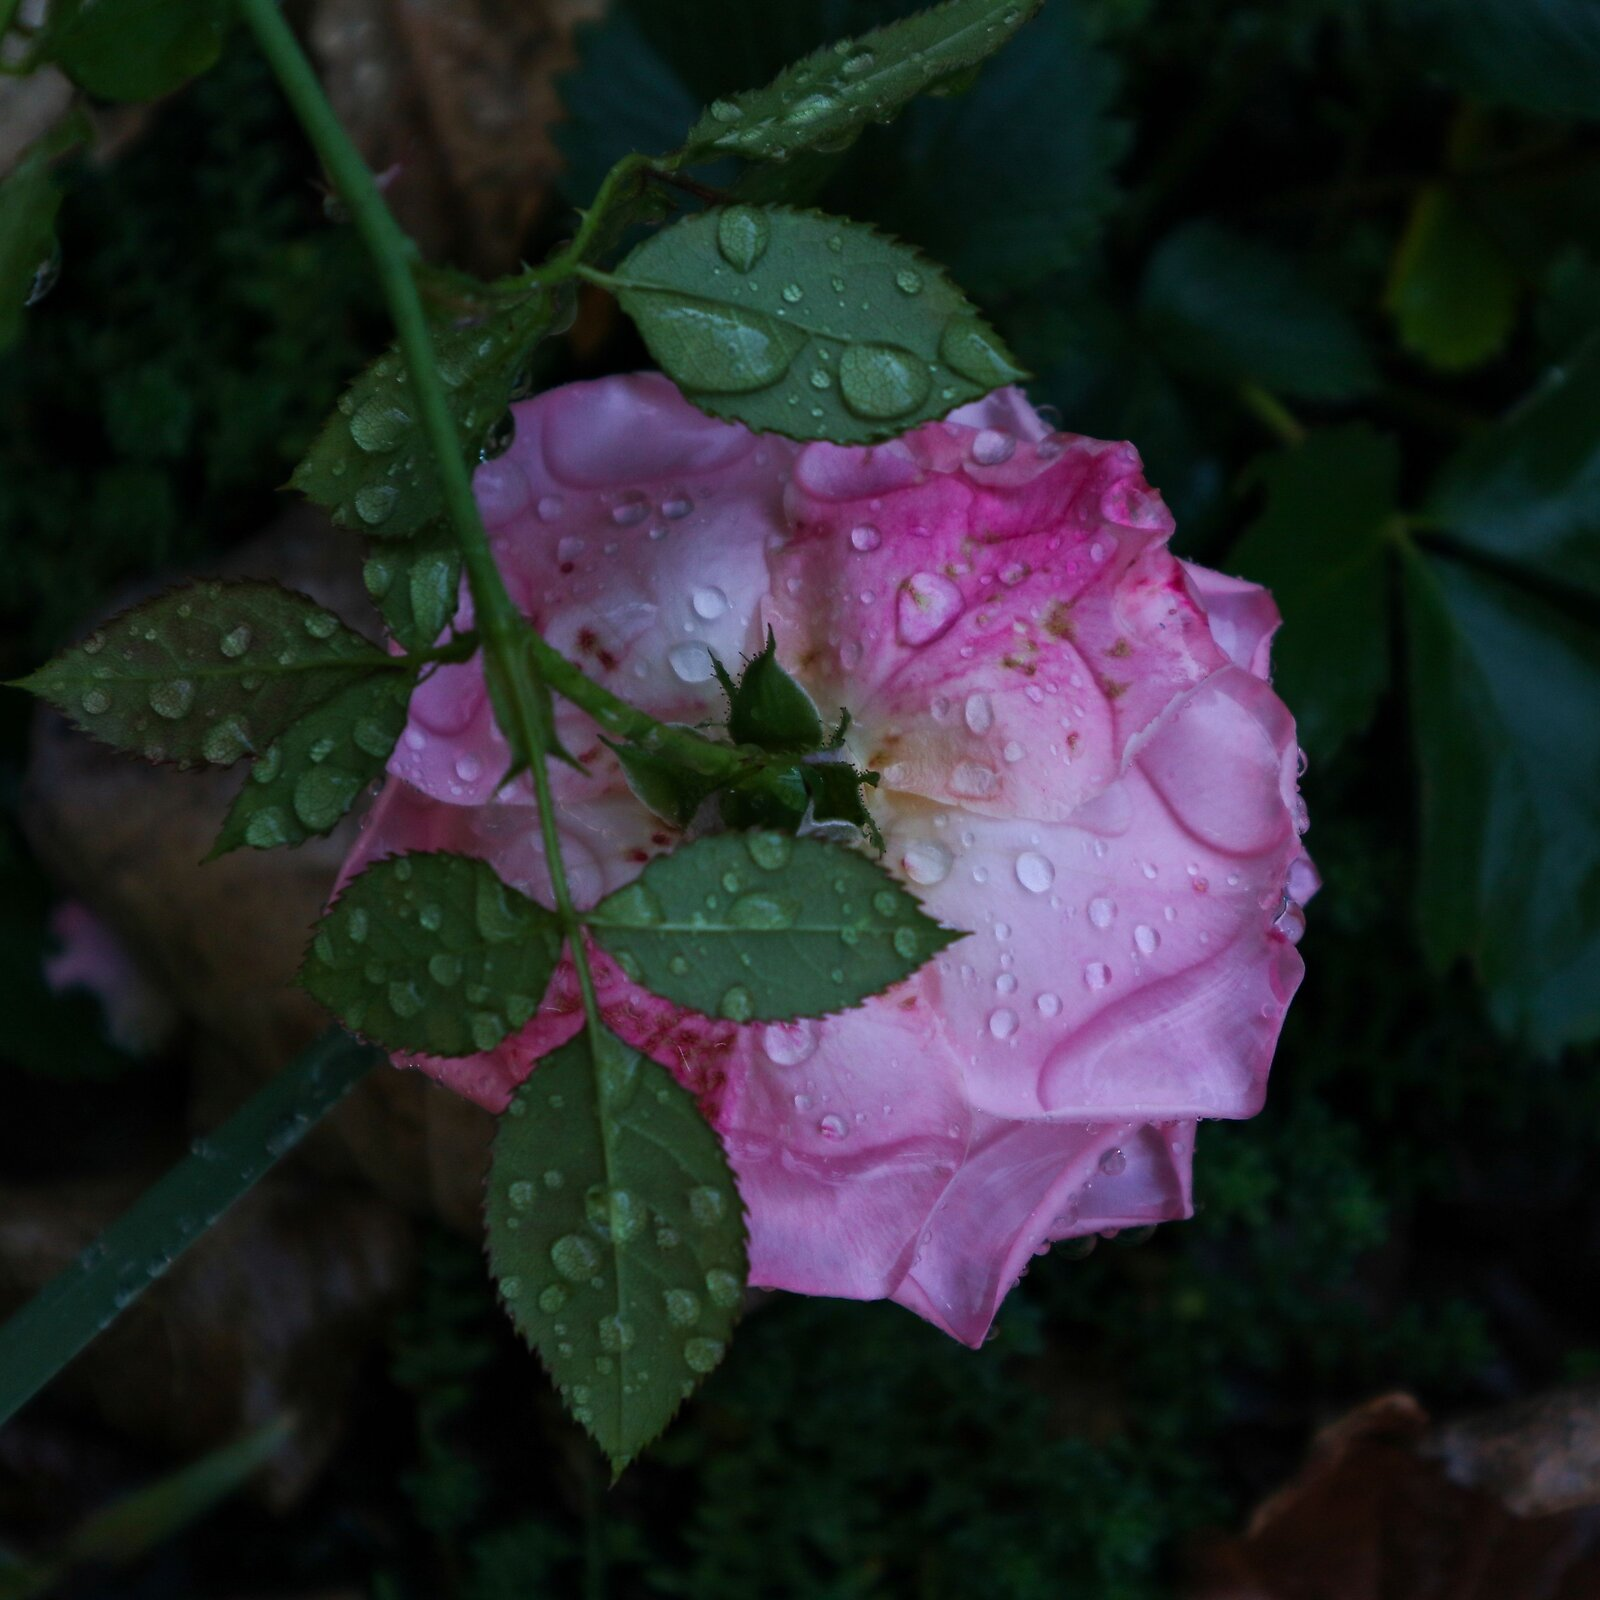 rose_wet_CanM100_15to45_Dec20.jpg